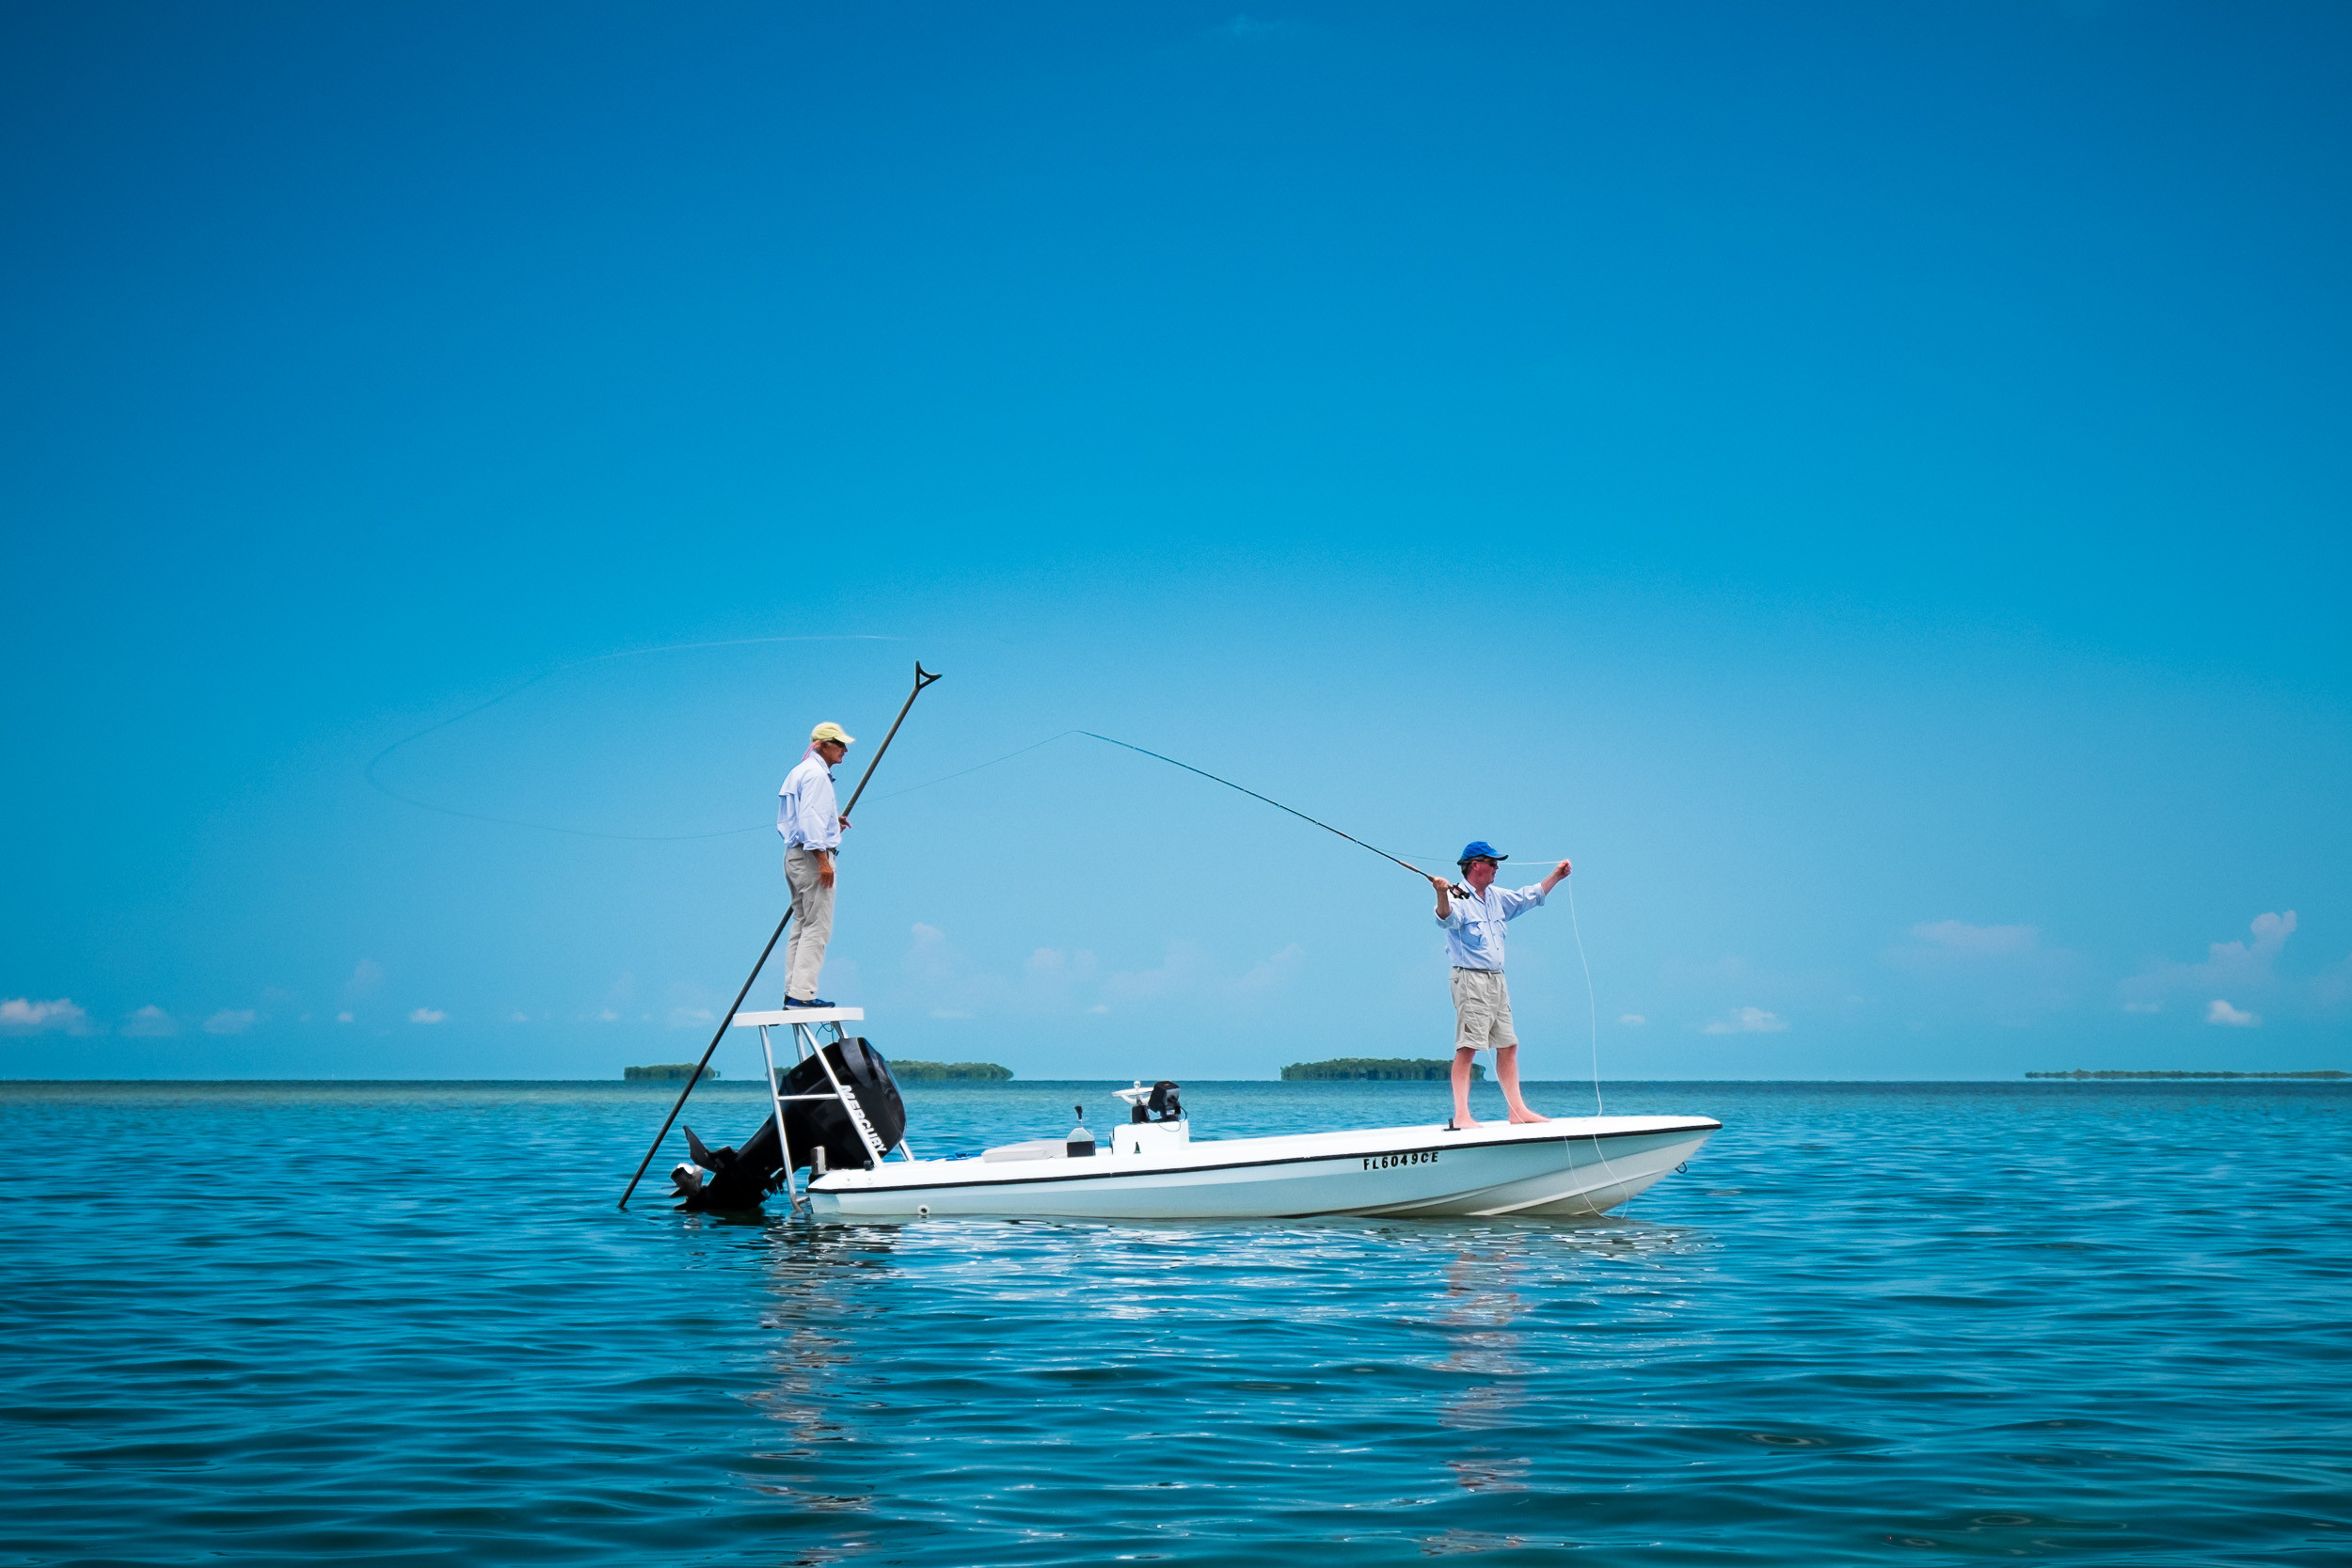 Capt Mike Wilbur Chaser Key West: Key West Flats Fishing